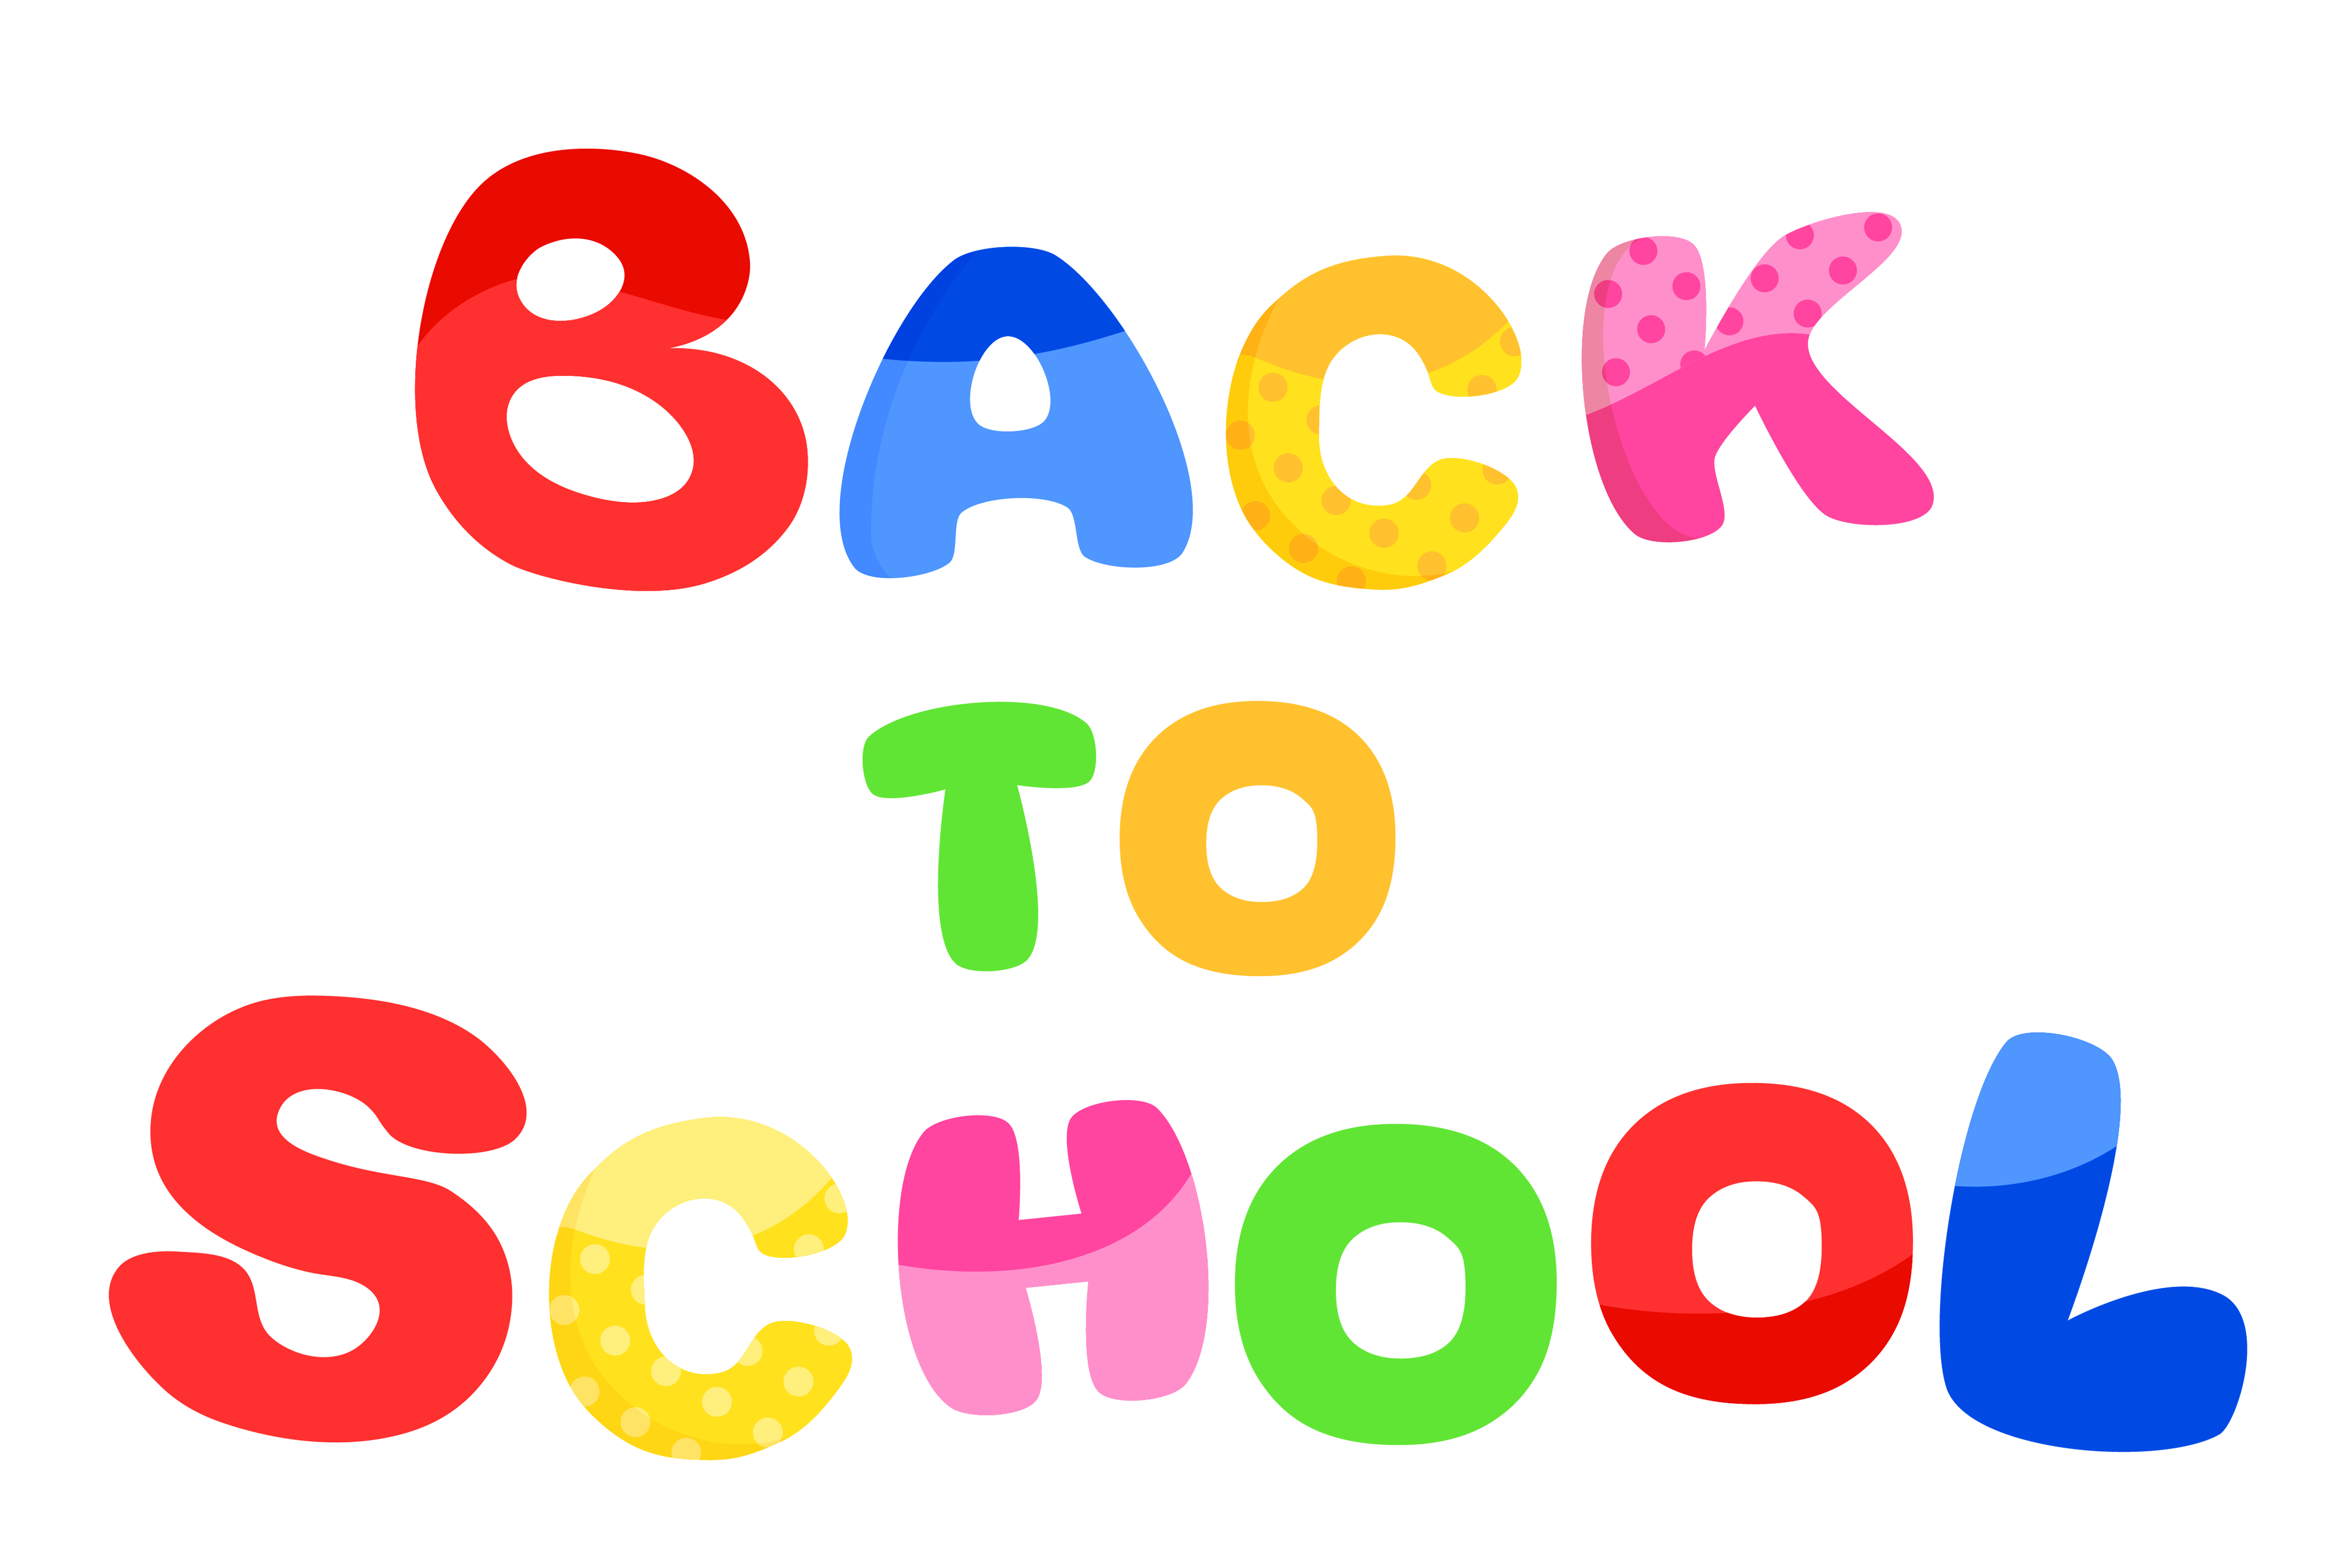 To school png picture. Back clipart transparent